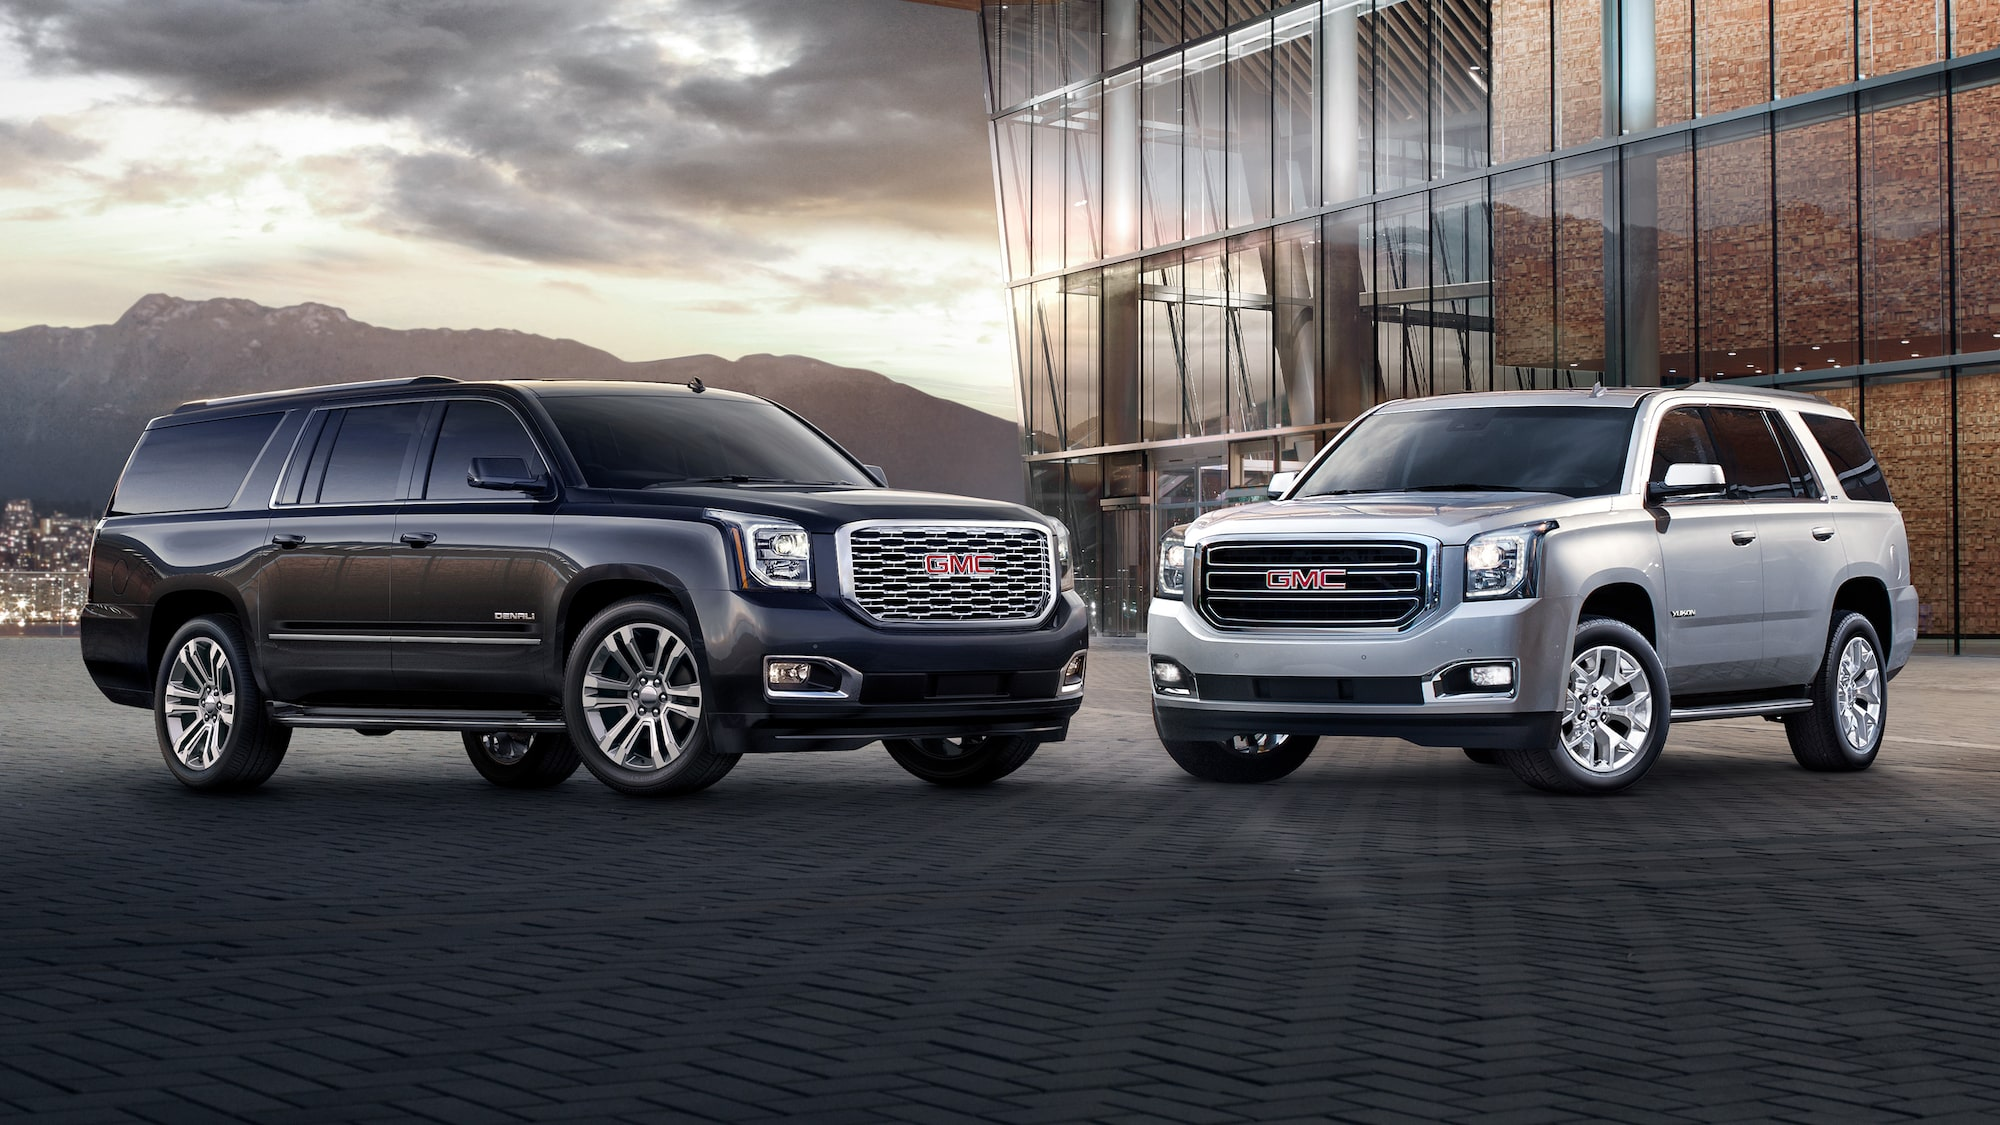 Small  Mid Size   Full Size SUVs   GMC Image showing the 2018 GMC Yukon full size SUV